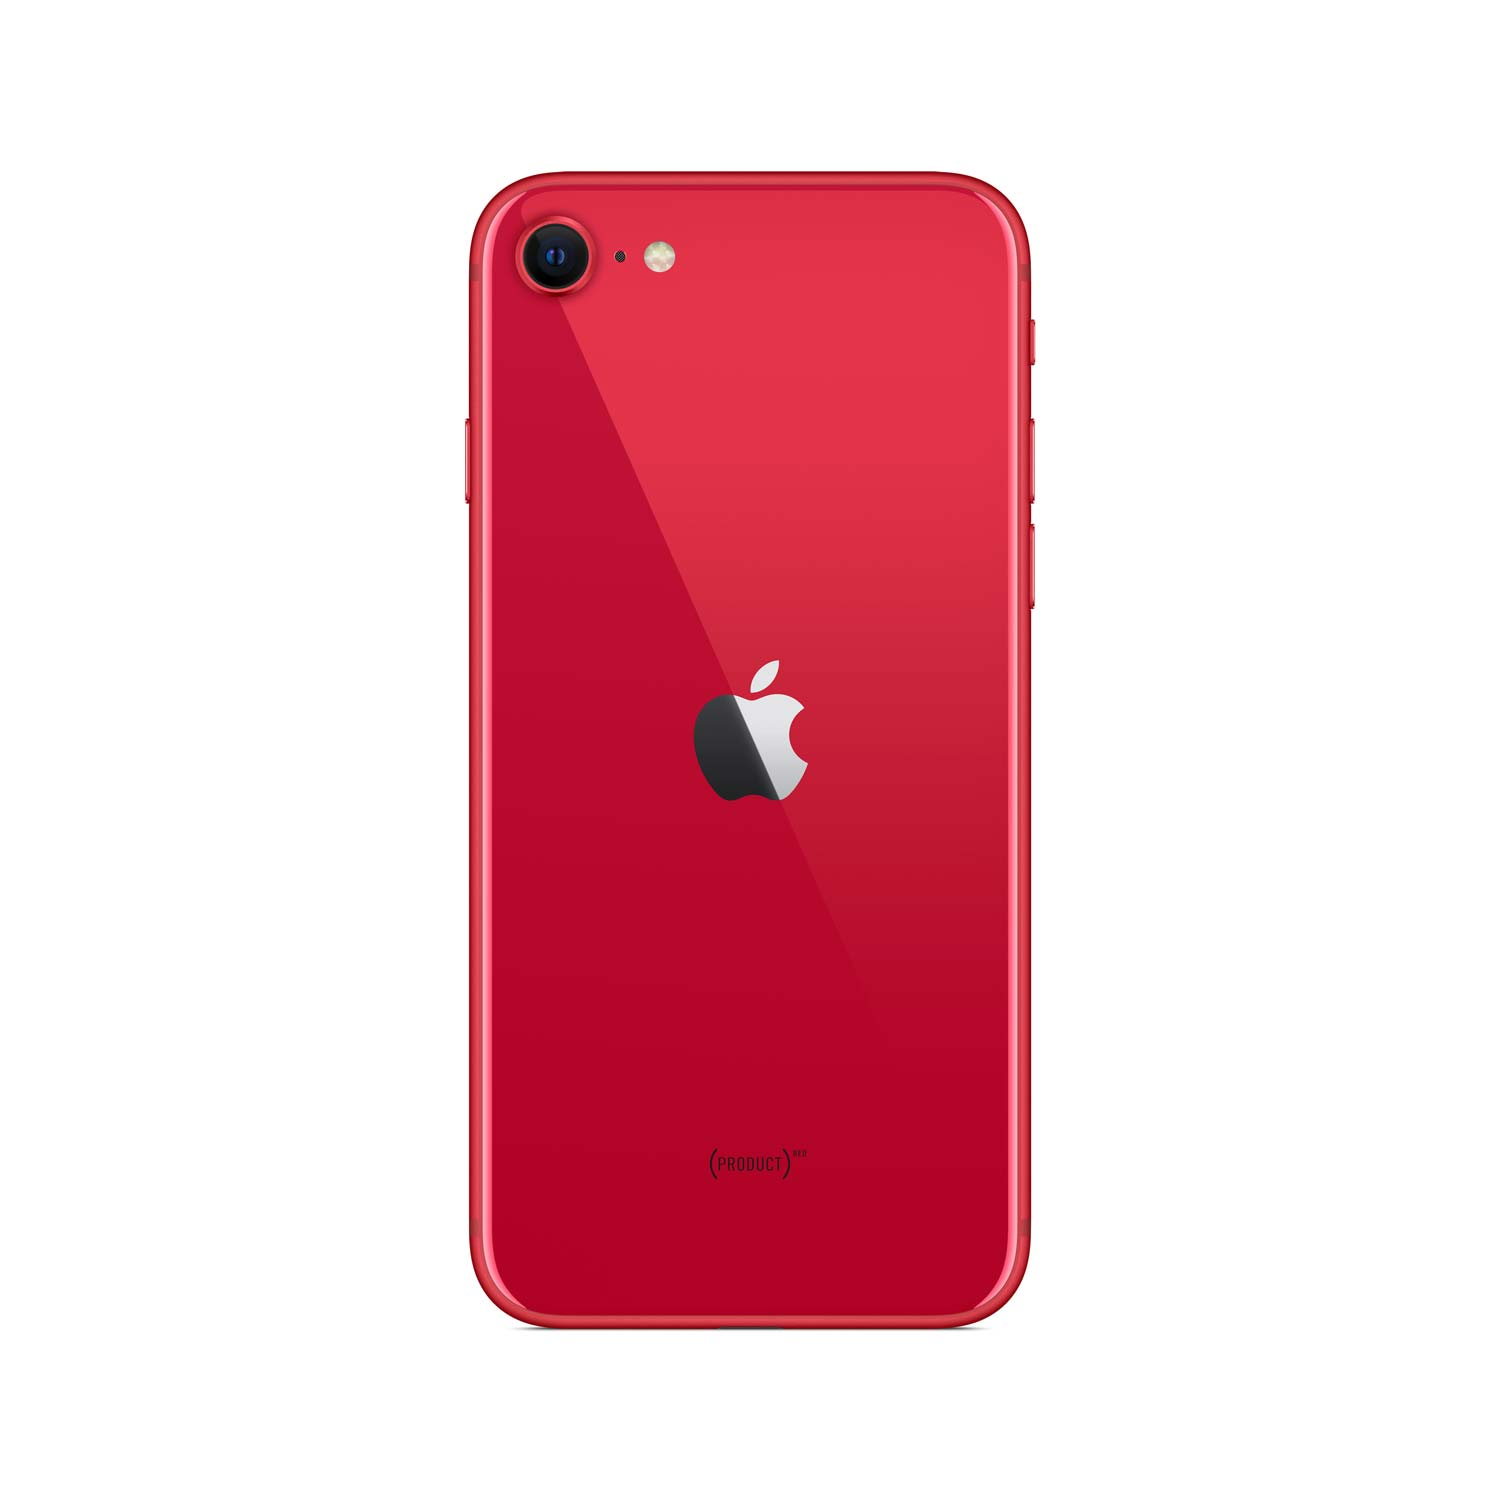 Apple iPhone SE (PRODUCT)RED - 64GB